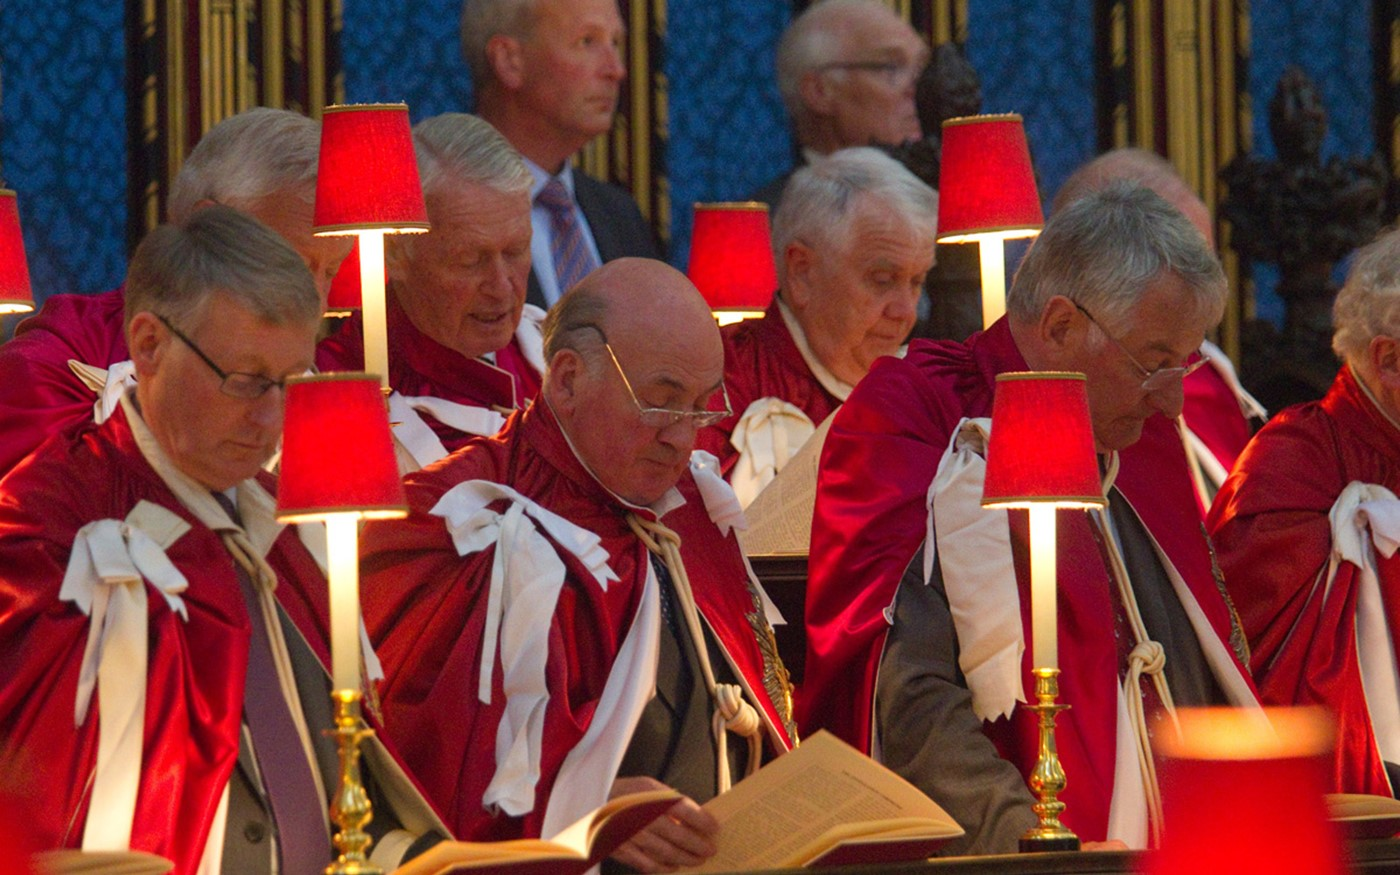 The Knights of the Order in the quire